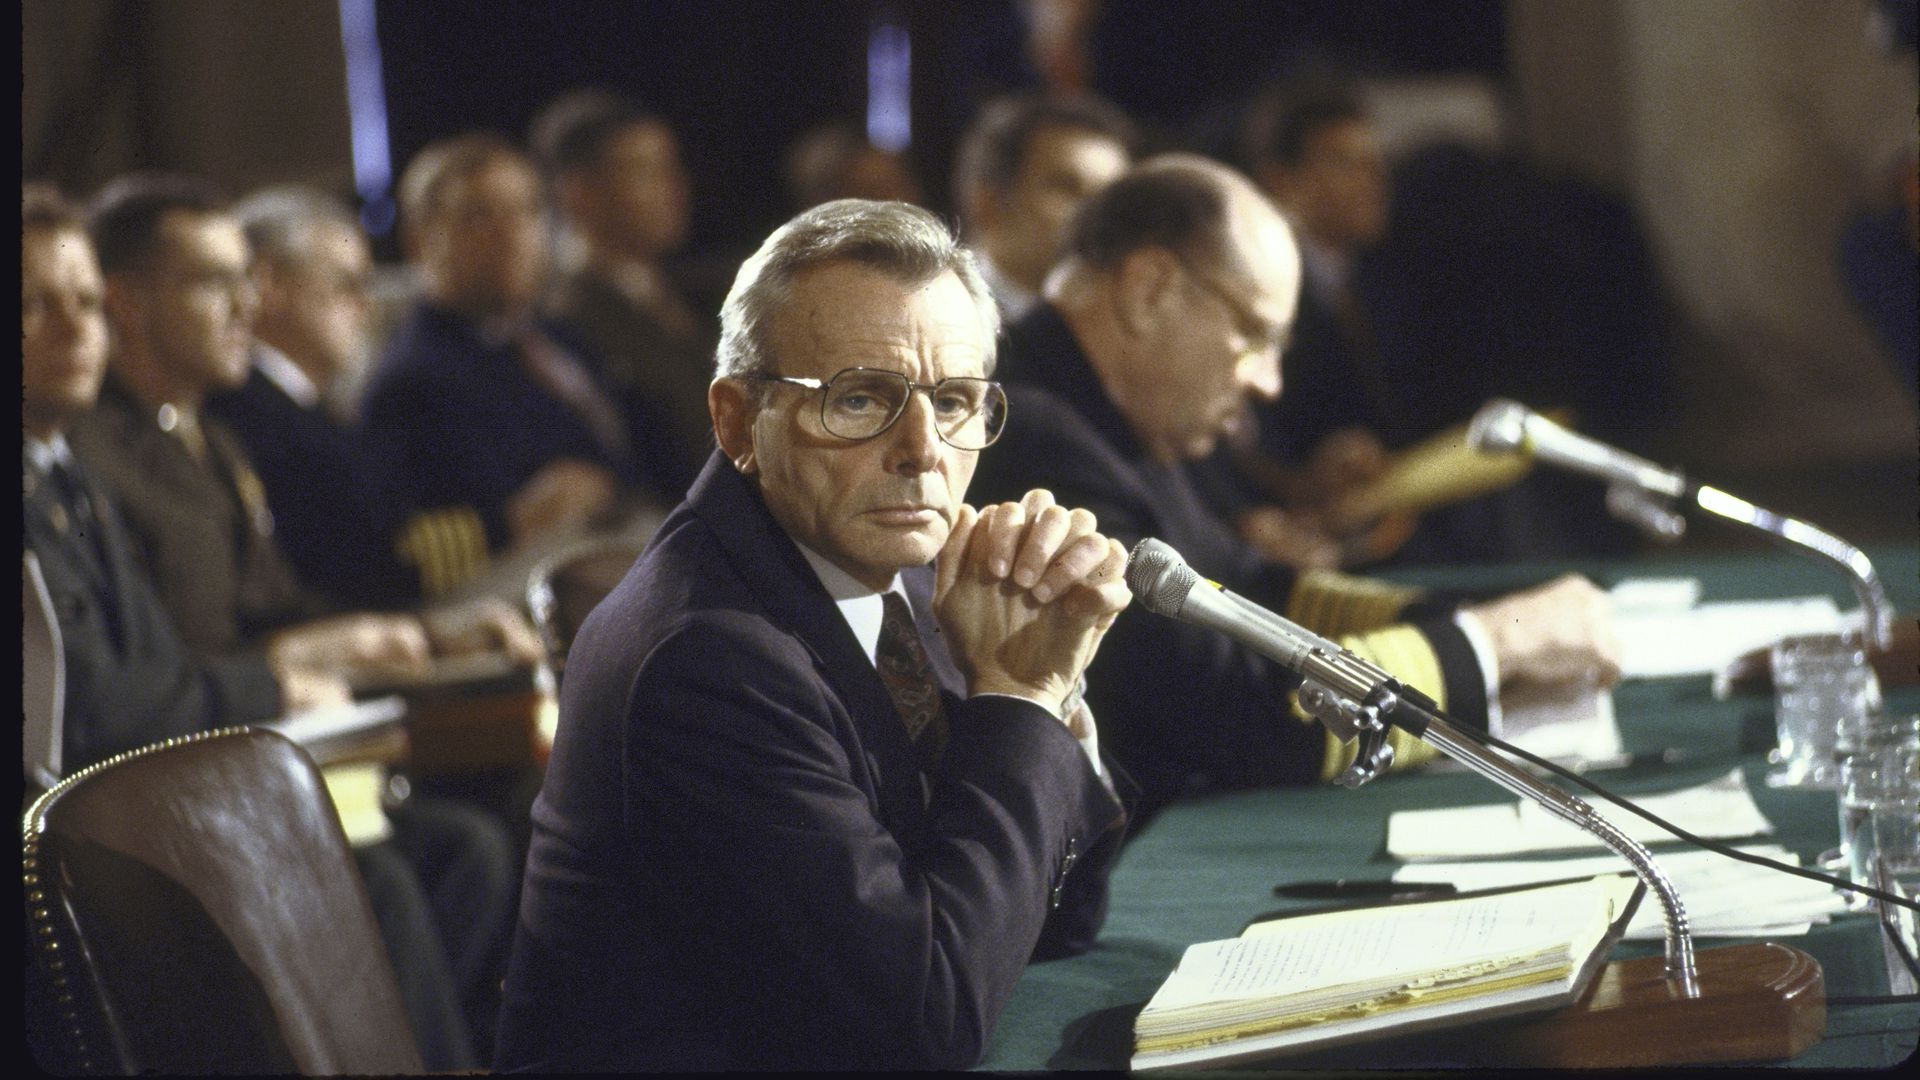 Frank Carlucci sits with hands steepled at a wooden table, looking towards the camera sideways.